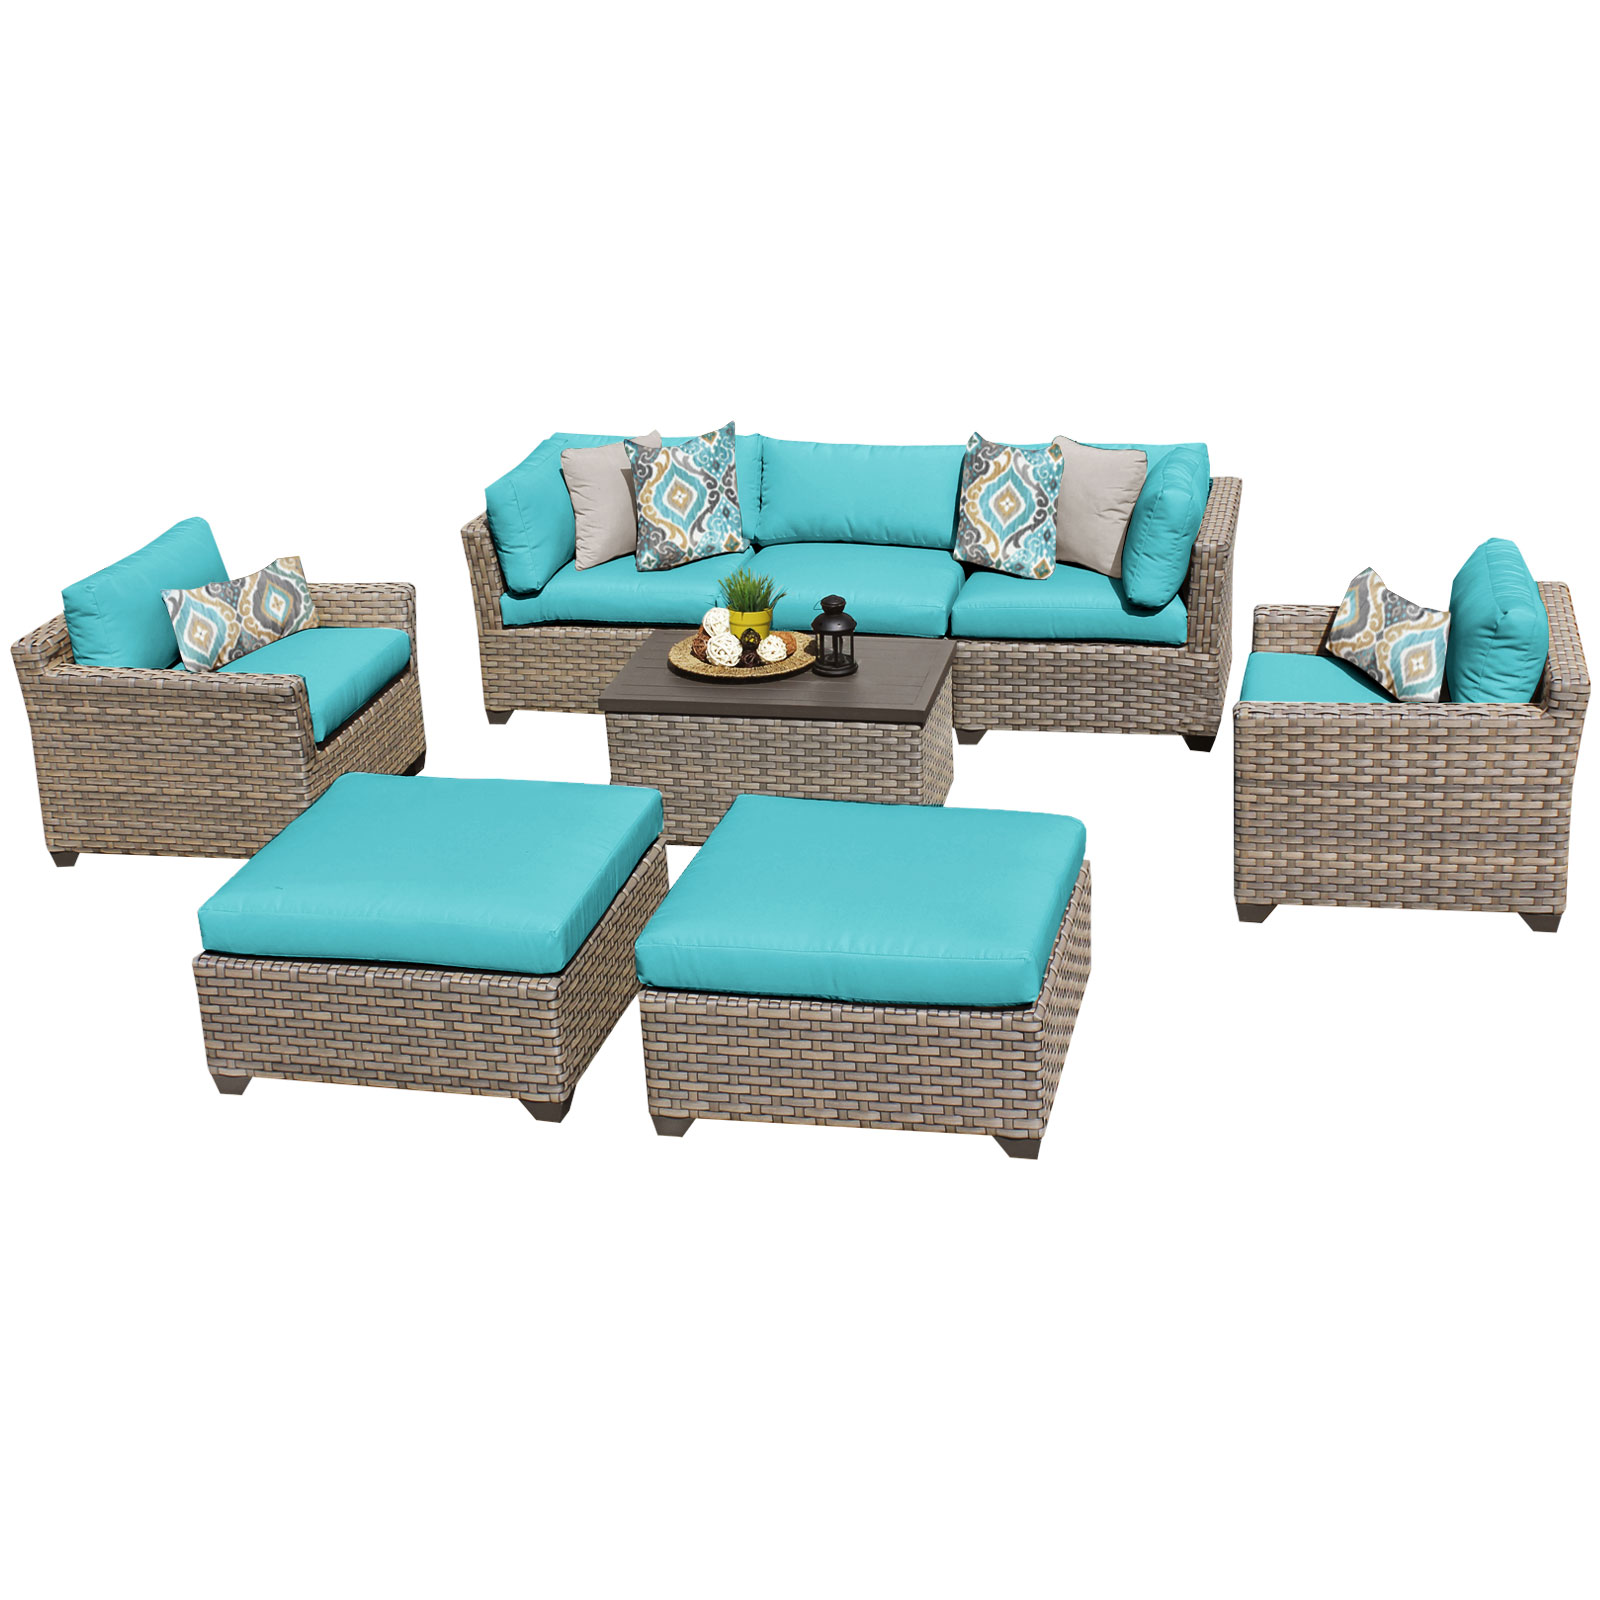 Superieur Hampton 8 Piece Outdoor Wicker Patio Furniture Set 08a